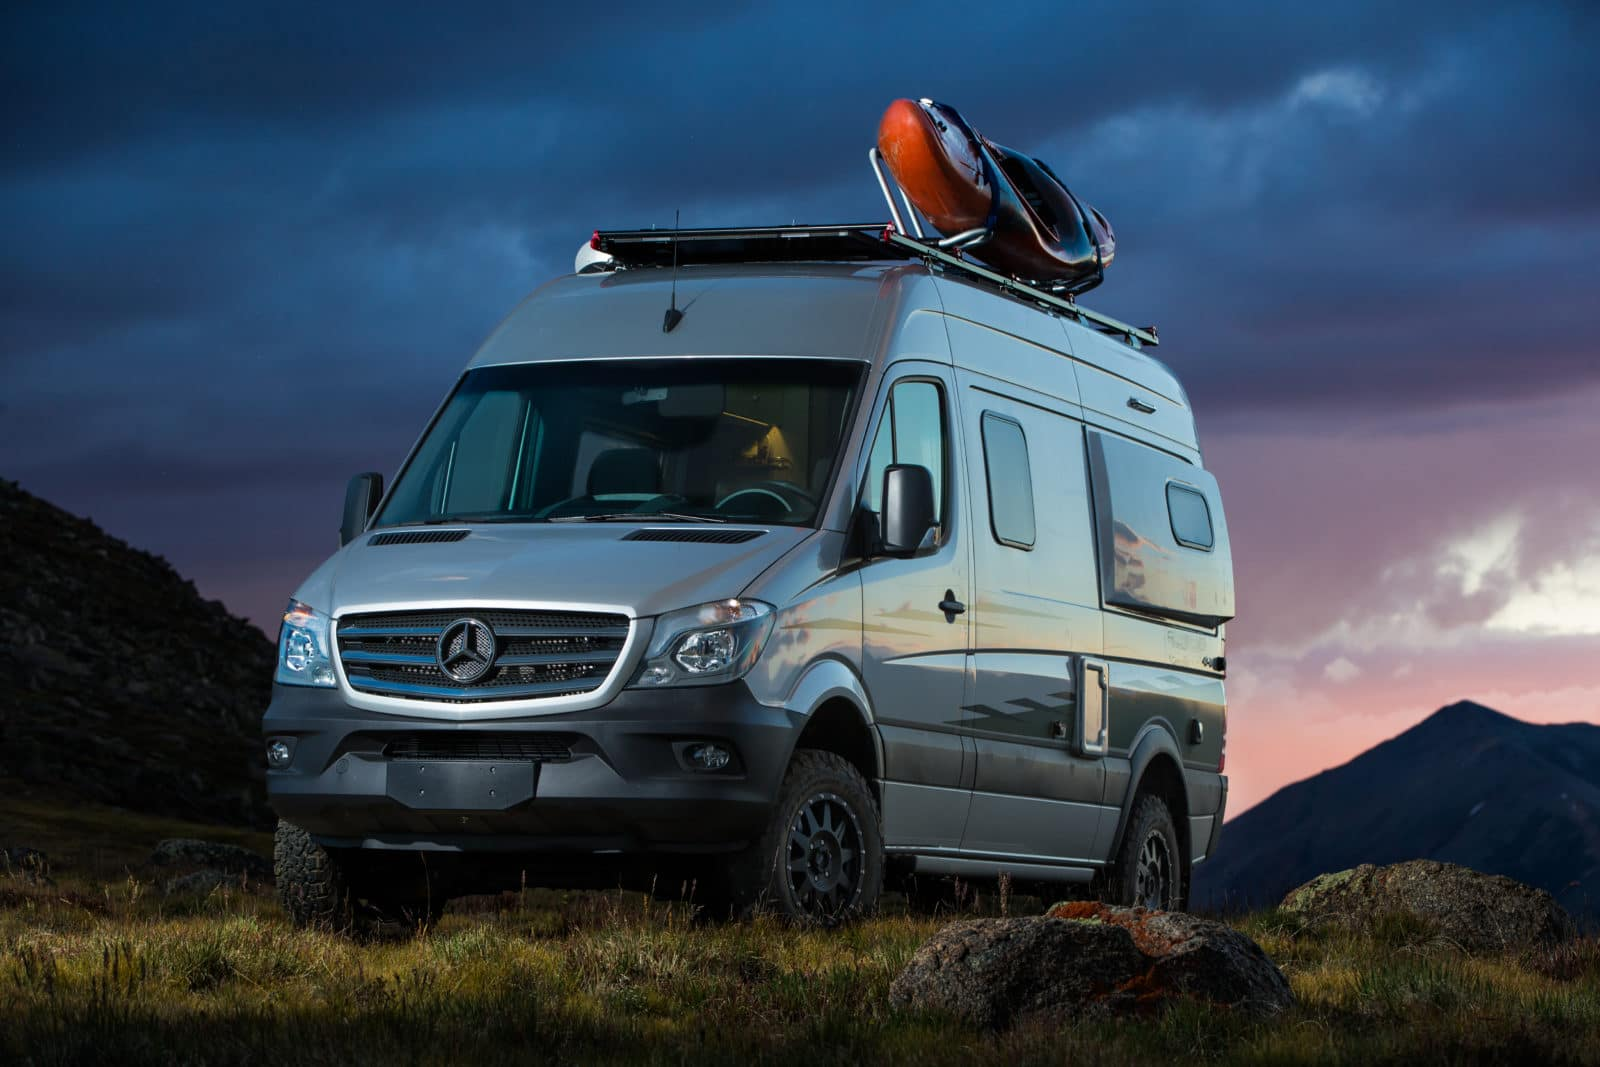 Mercedes Sprinter Rv >> Winnebago Revel 4x4 Mercedes Sprinter Van Rv We Love To Explore